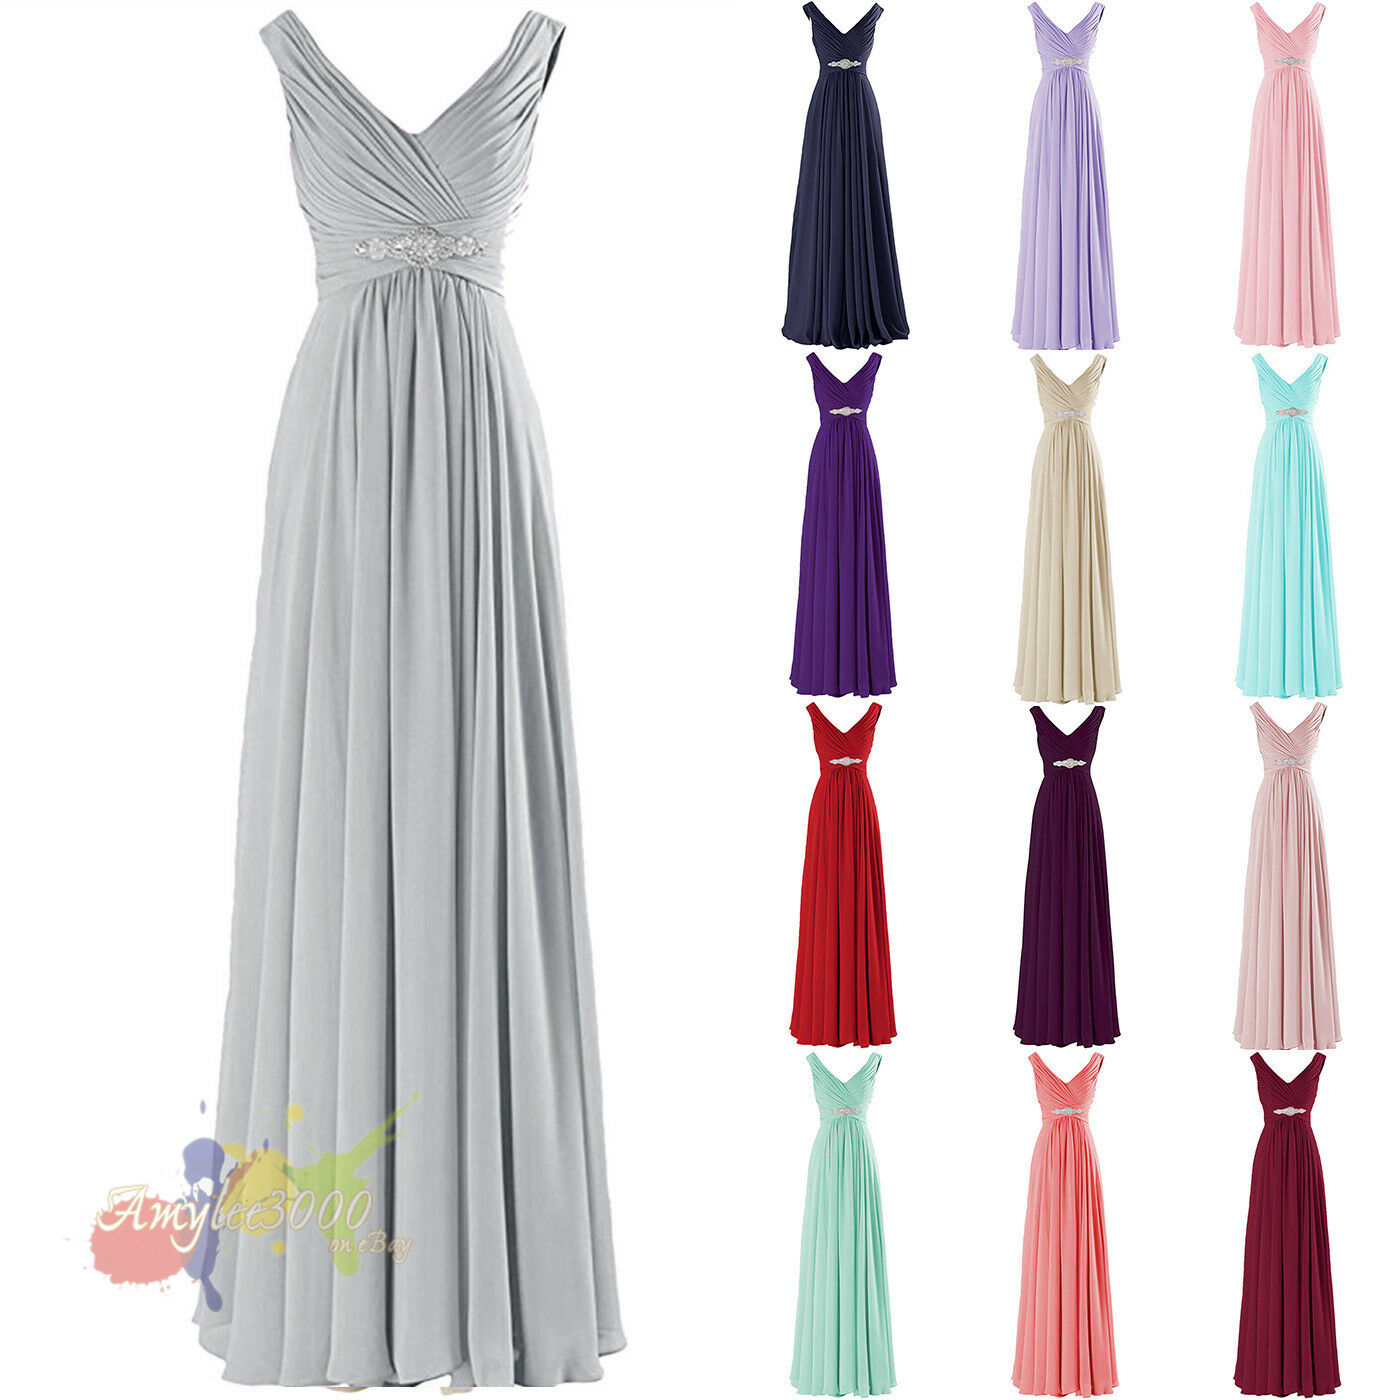 Long Chiffon Cap Sleeve Formal Prom Dresses Party Bridesmaid Evening Gowns 6-16